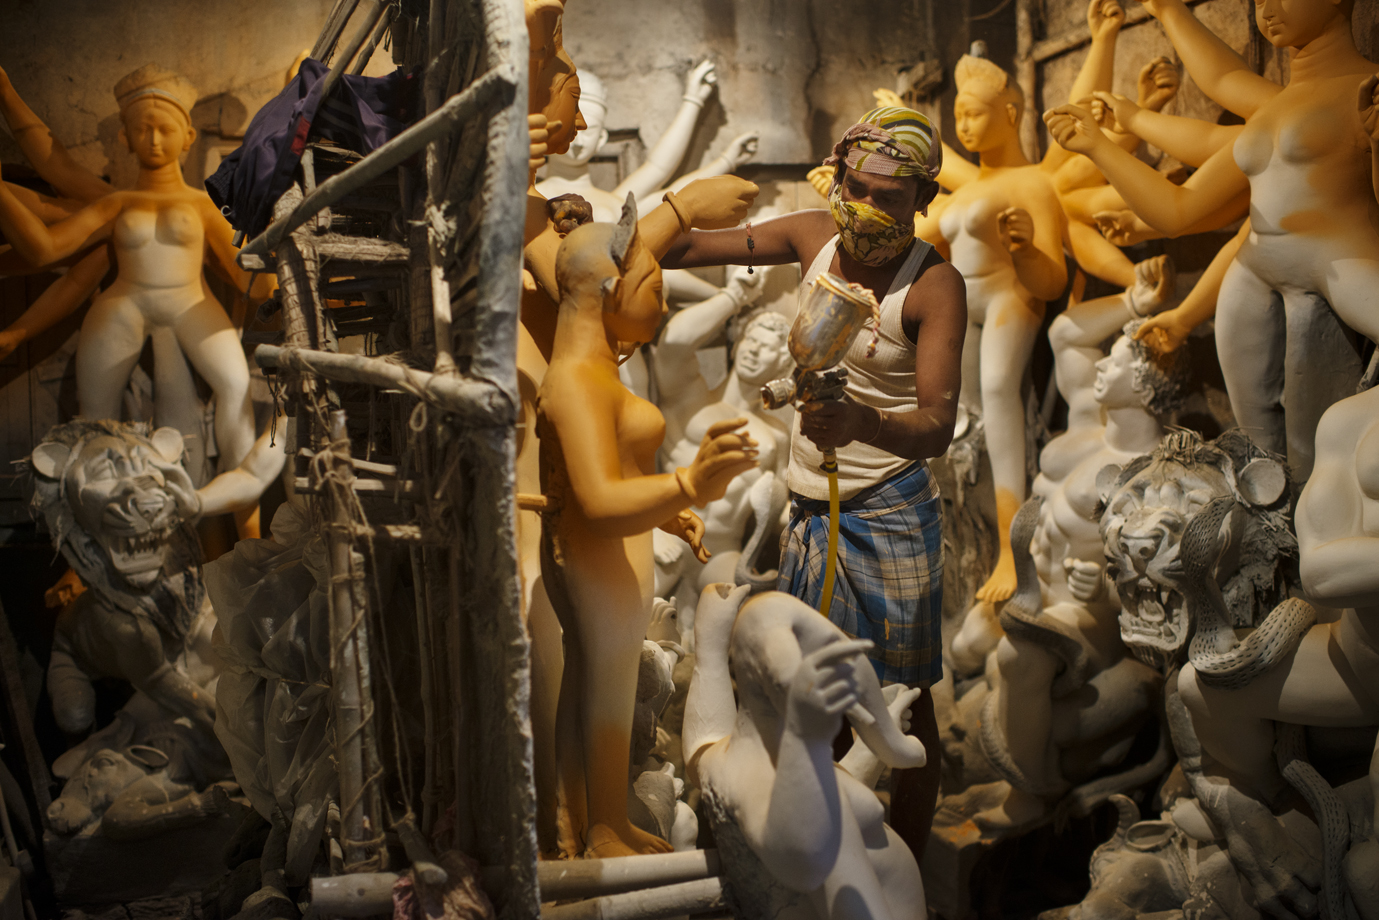 Statue manufacturer, Calcutta/ India